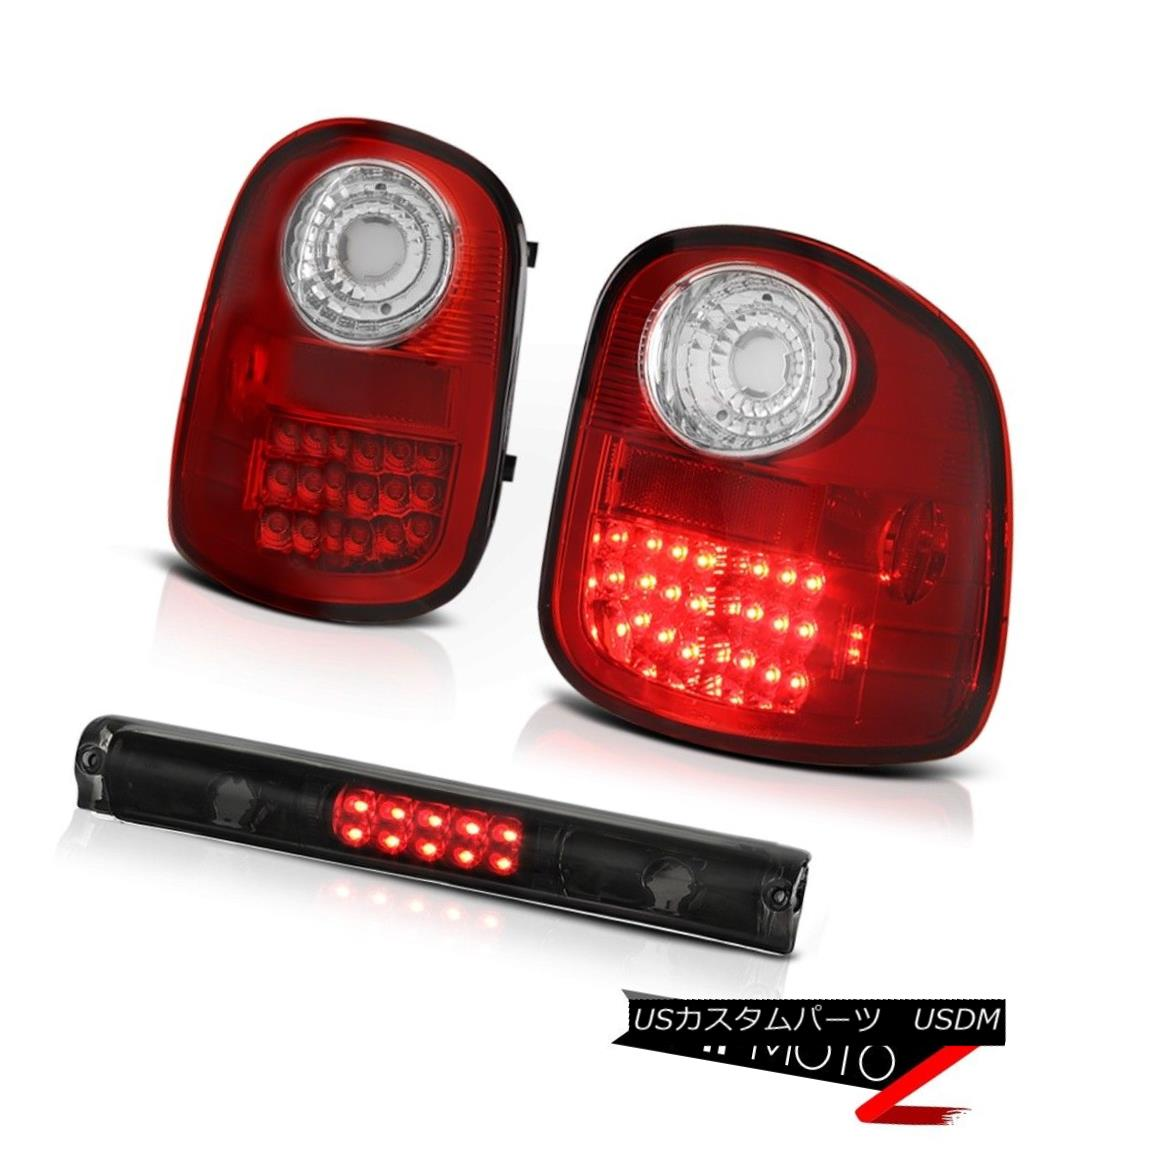 テールライト LED Signal Tail Lights Smoke Third Brake 1997-2003 Ford F150 Flareside Lariat LED信号テールライトは第3ブレーキを煙る1997-2003 Ford F150 Flareside Lariat